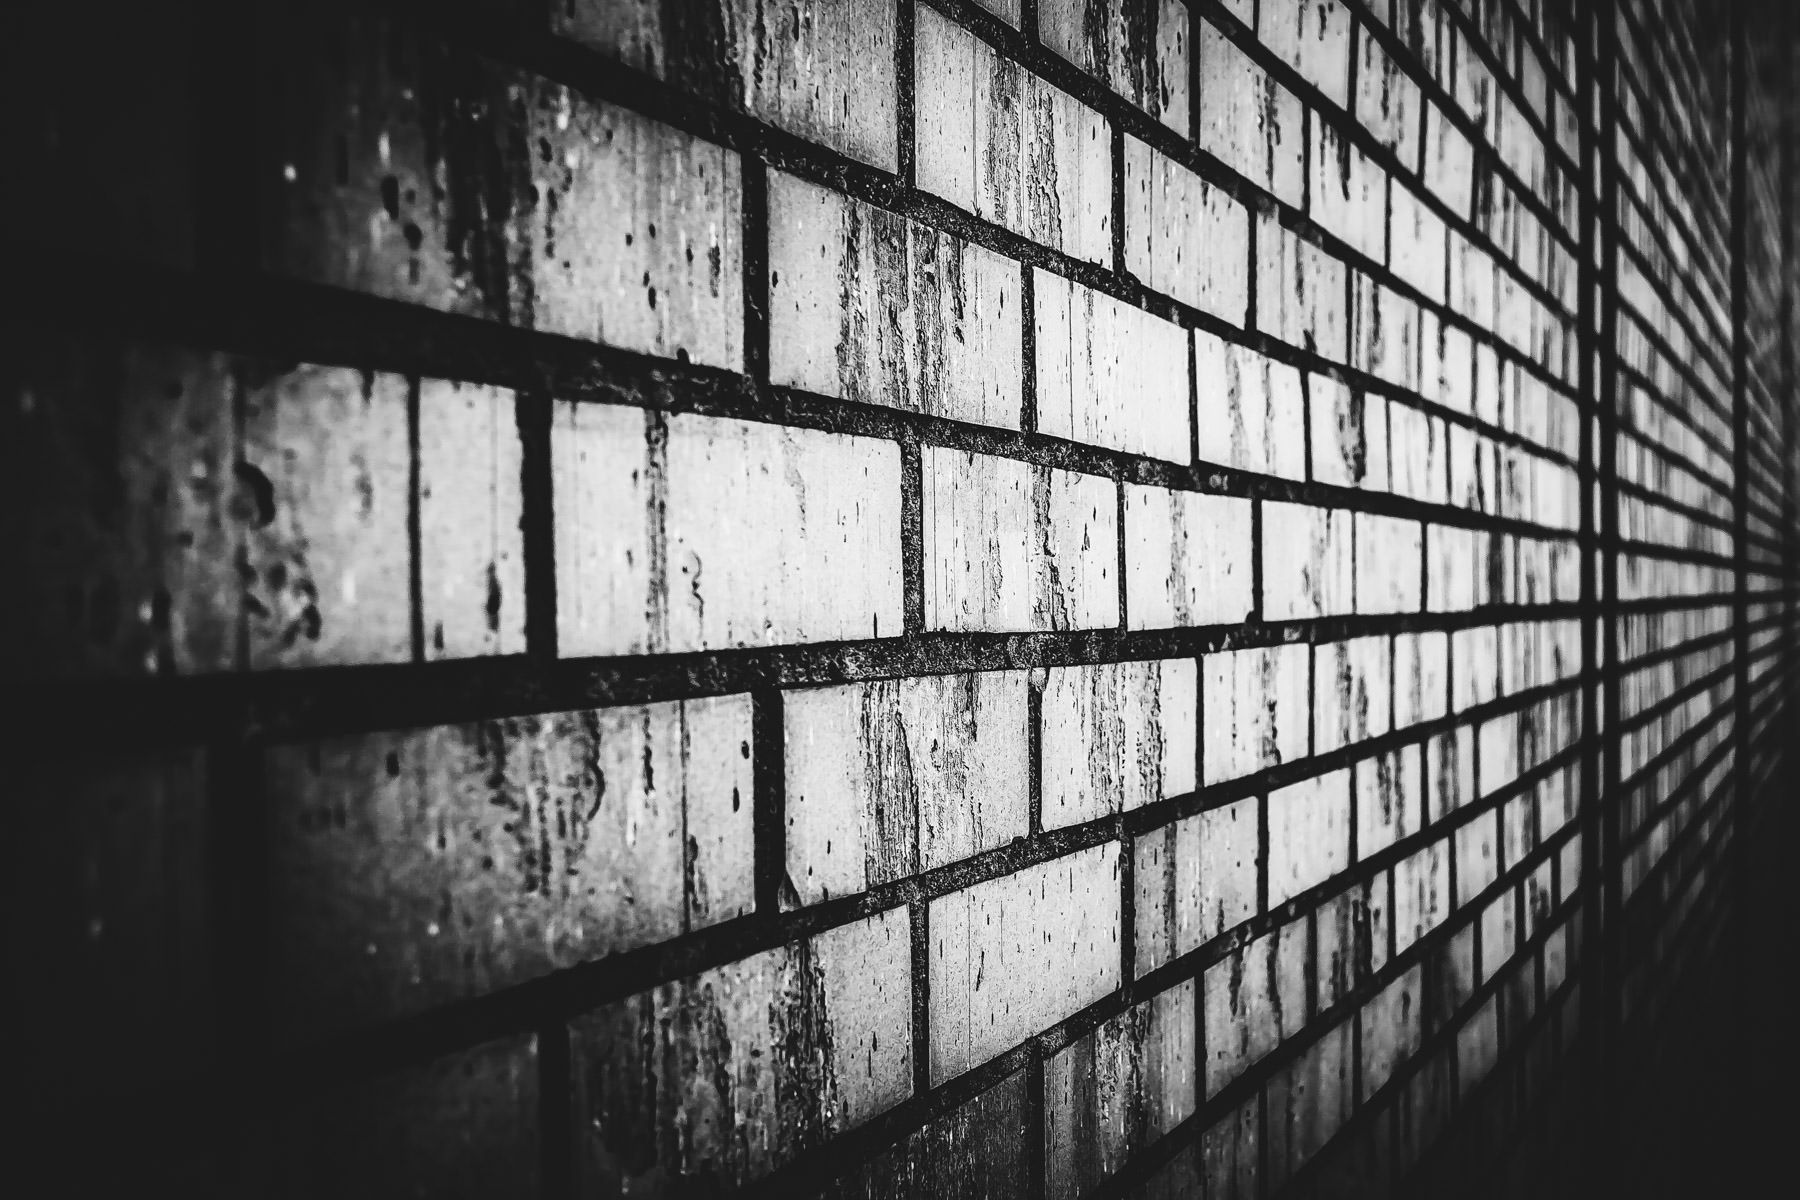 A brick wall in Overton, Texas.